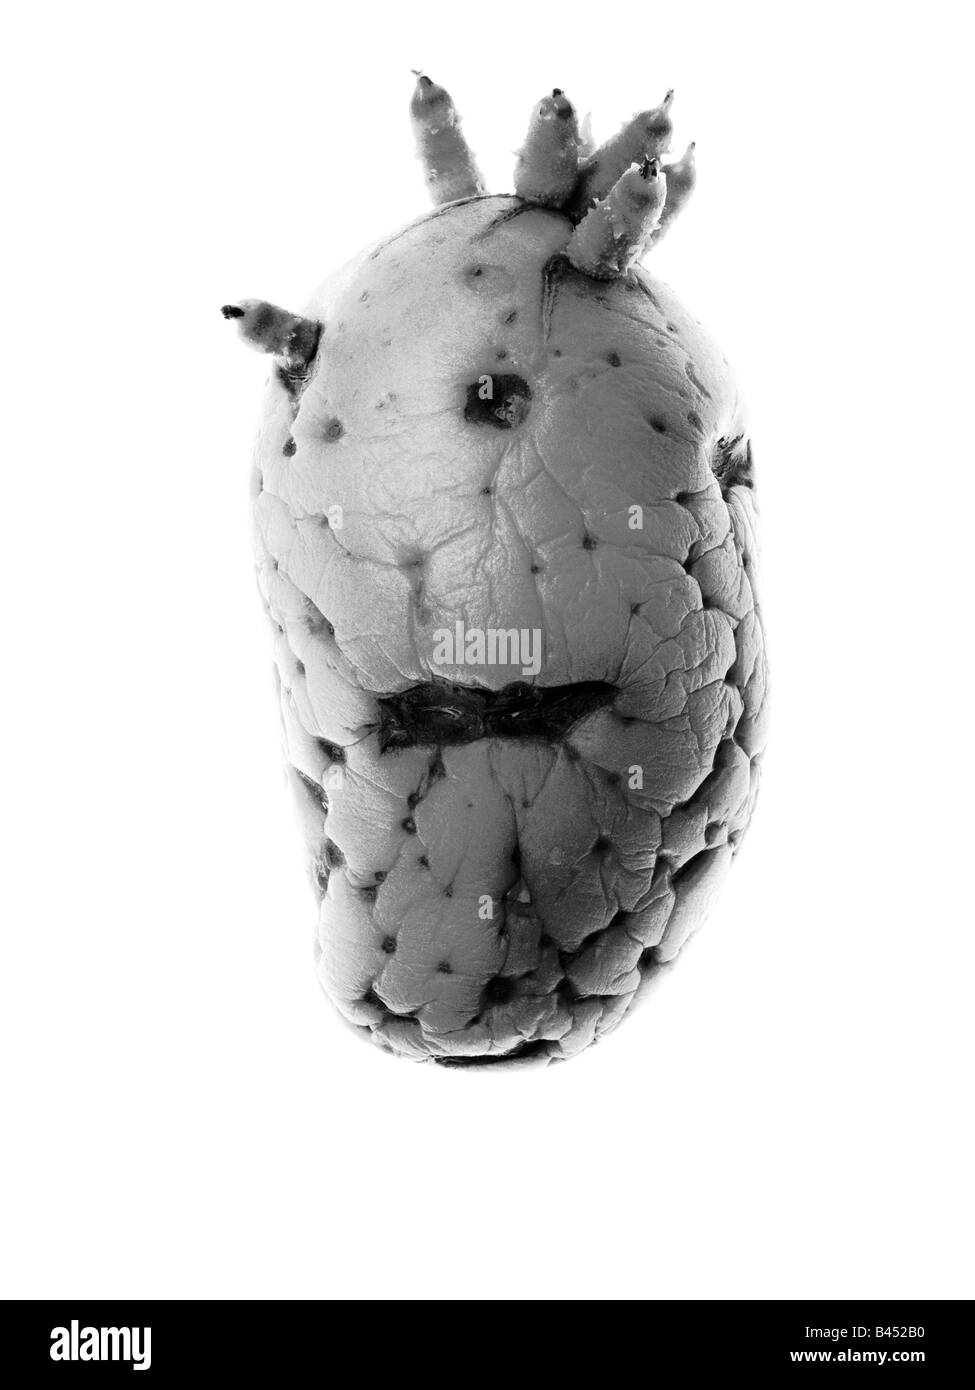 Old sprouting Potato face - Stock Image